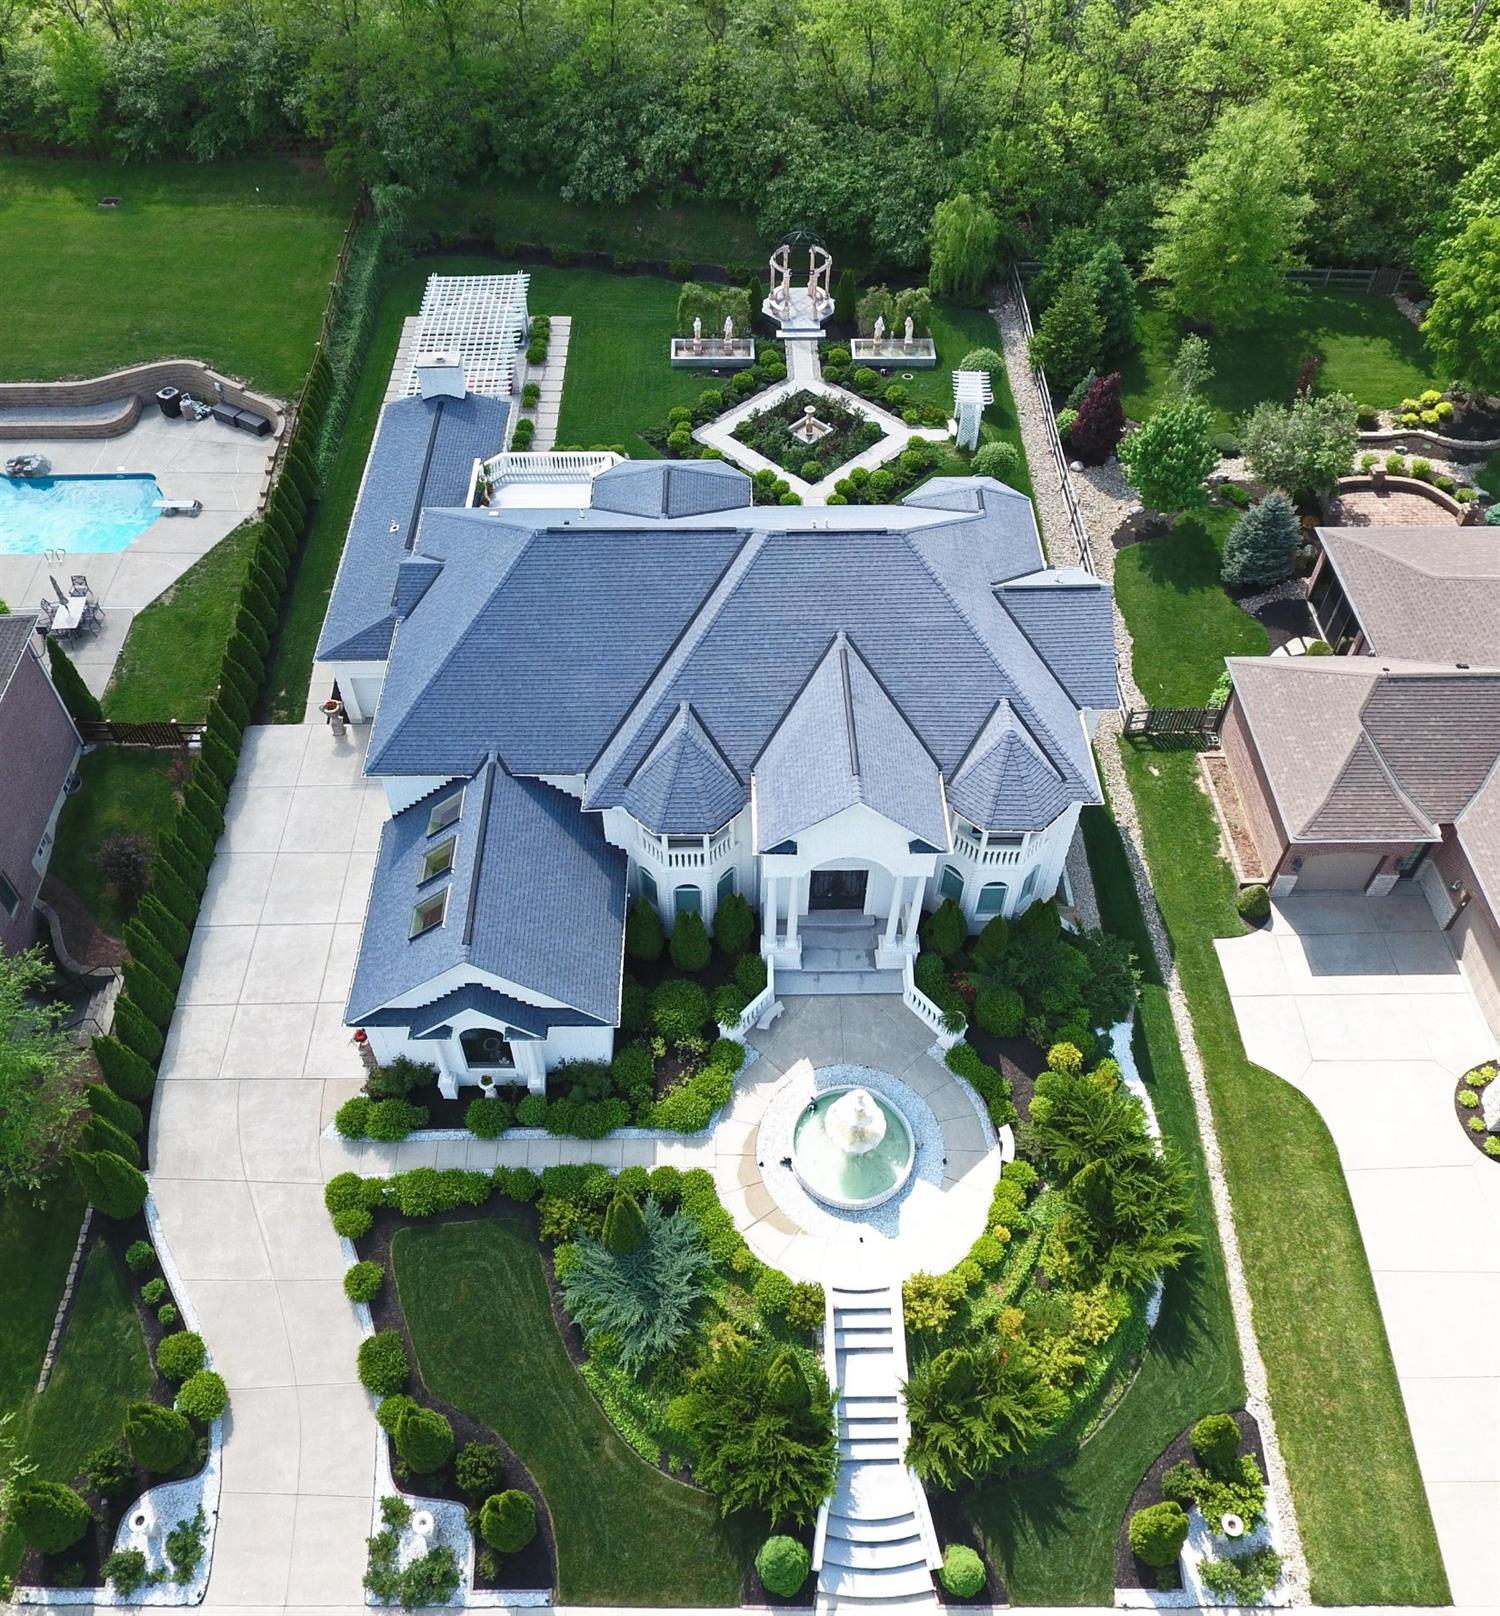 Luxuriously Majestic and Lavish Custom Home*6346 SqFt*5BD*6BA*Grand Entertaining and Family Living w/Formal Aristocratic Gardens*Lrg Custm Gour Kitch w/Hi-End Appl & Wlk-In Coolr*Mstr Ste w/Luxry BA & 2nd Fl Patio/Blcony*1st Fl Guest Ste*6 Fireplcs*Imprtd Custm Marble & Grnte Fnshs*Outdr Ktch/Cvrd Patio*Spa*4 Car Grg*Amazing Outdoor Entertaining!